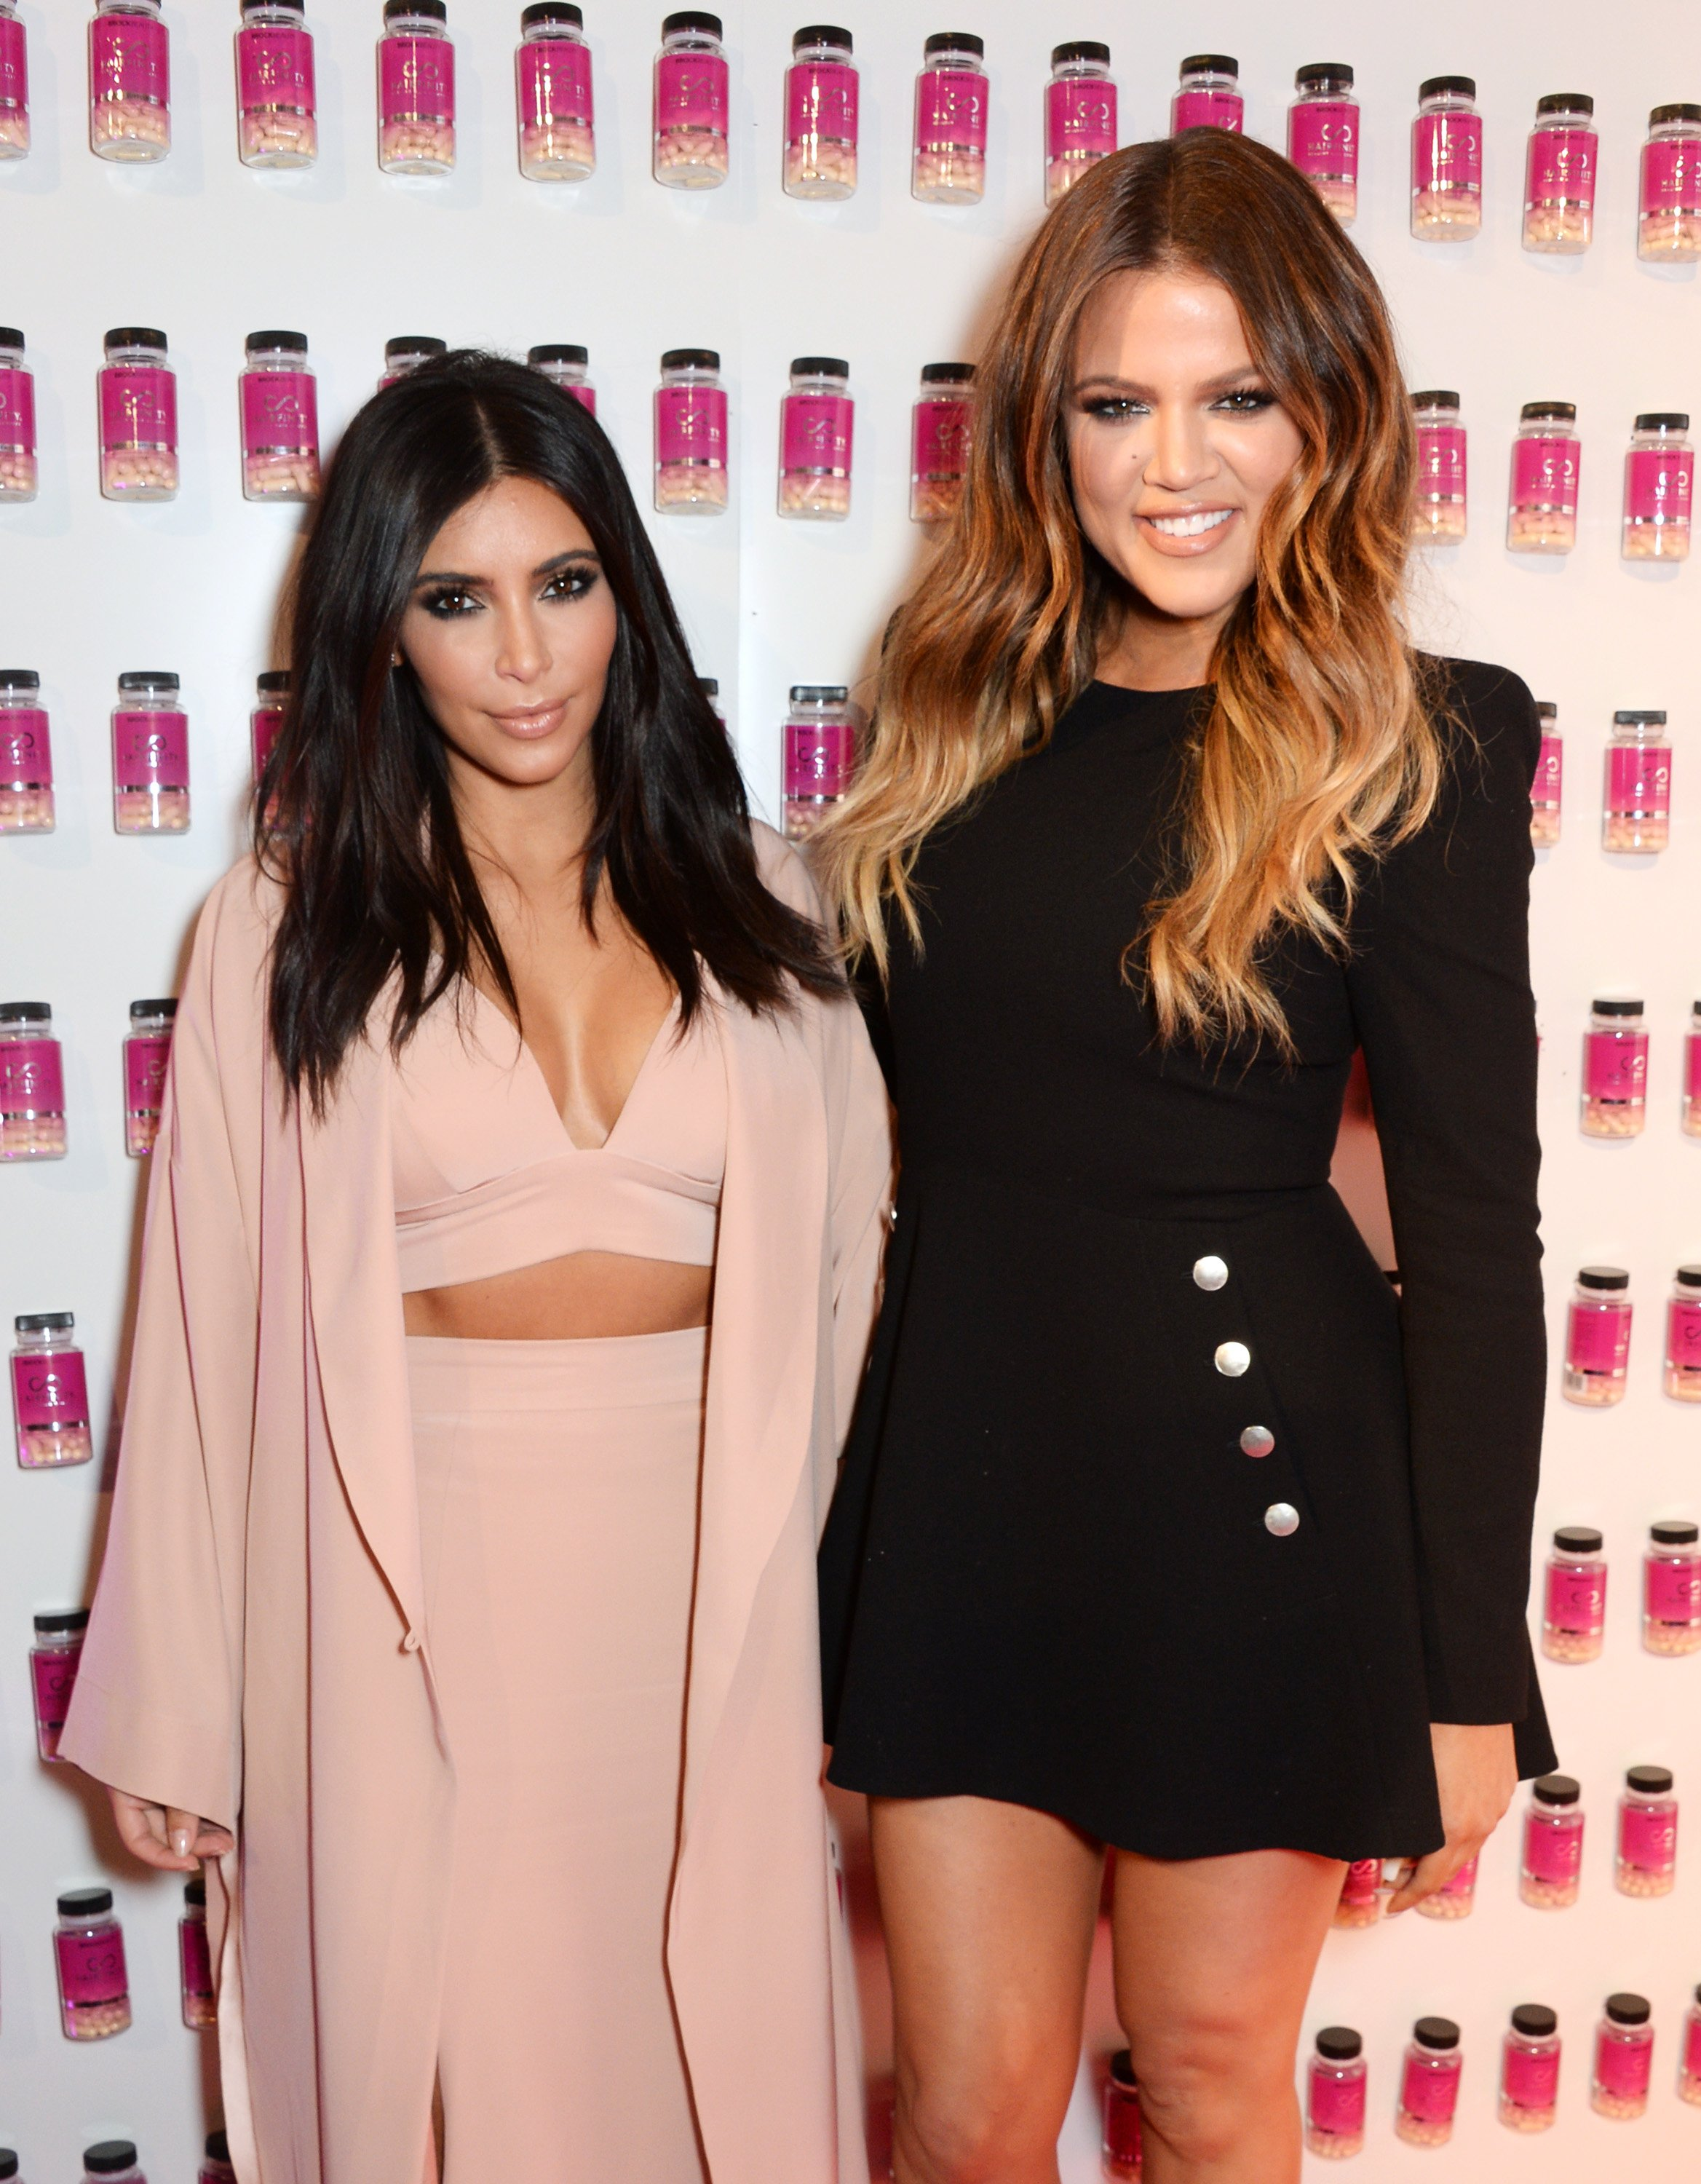 Kim and Khloe Kardashian attend the Hairfinity UK Launch at Il Bottaccio on November 8, 2014 | Source: Getty Images/GlobalImagesUkraine